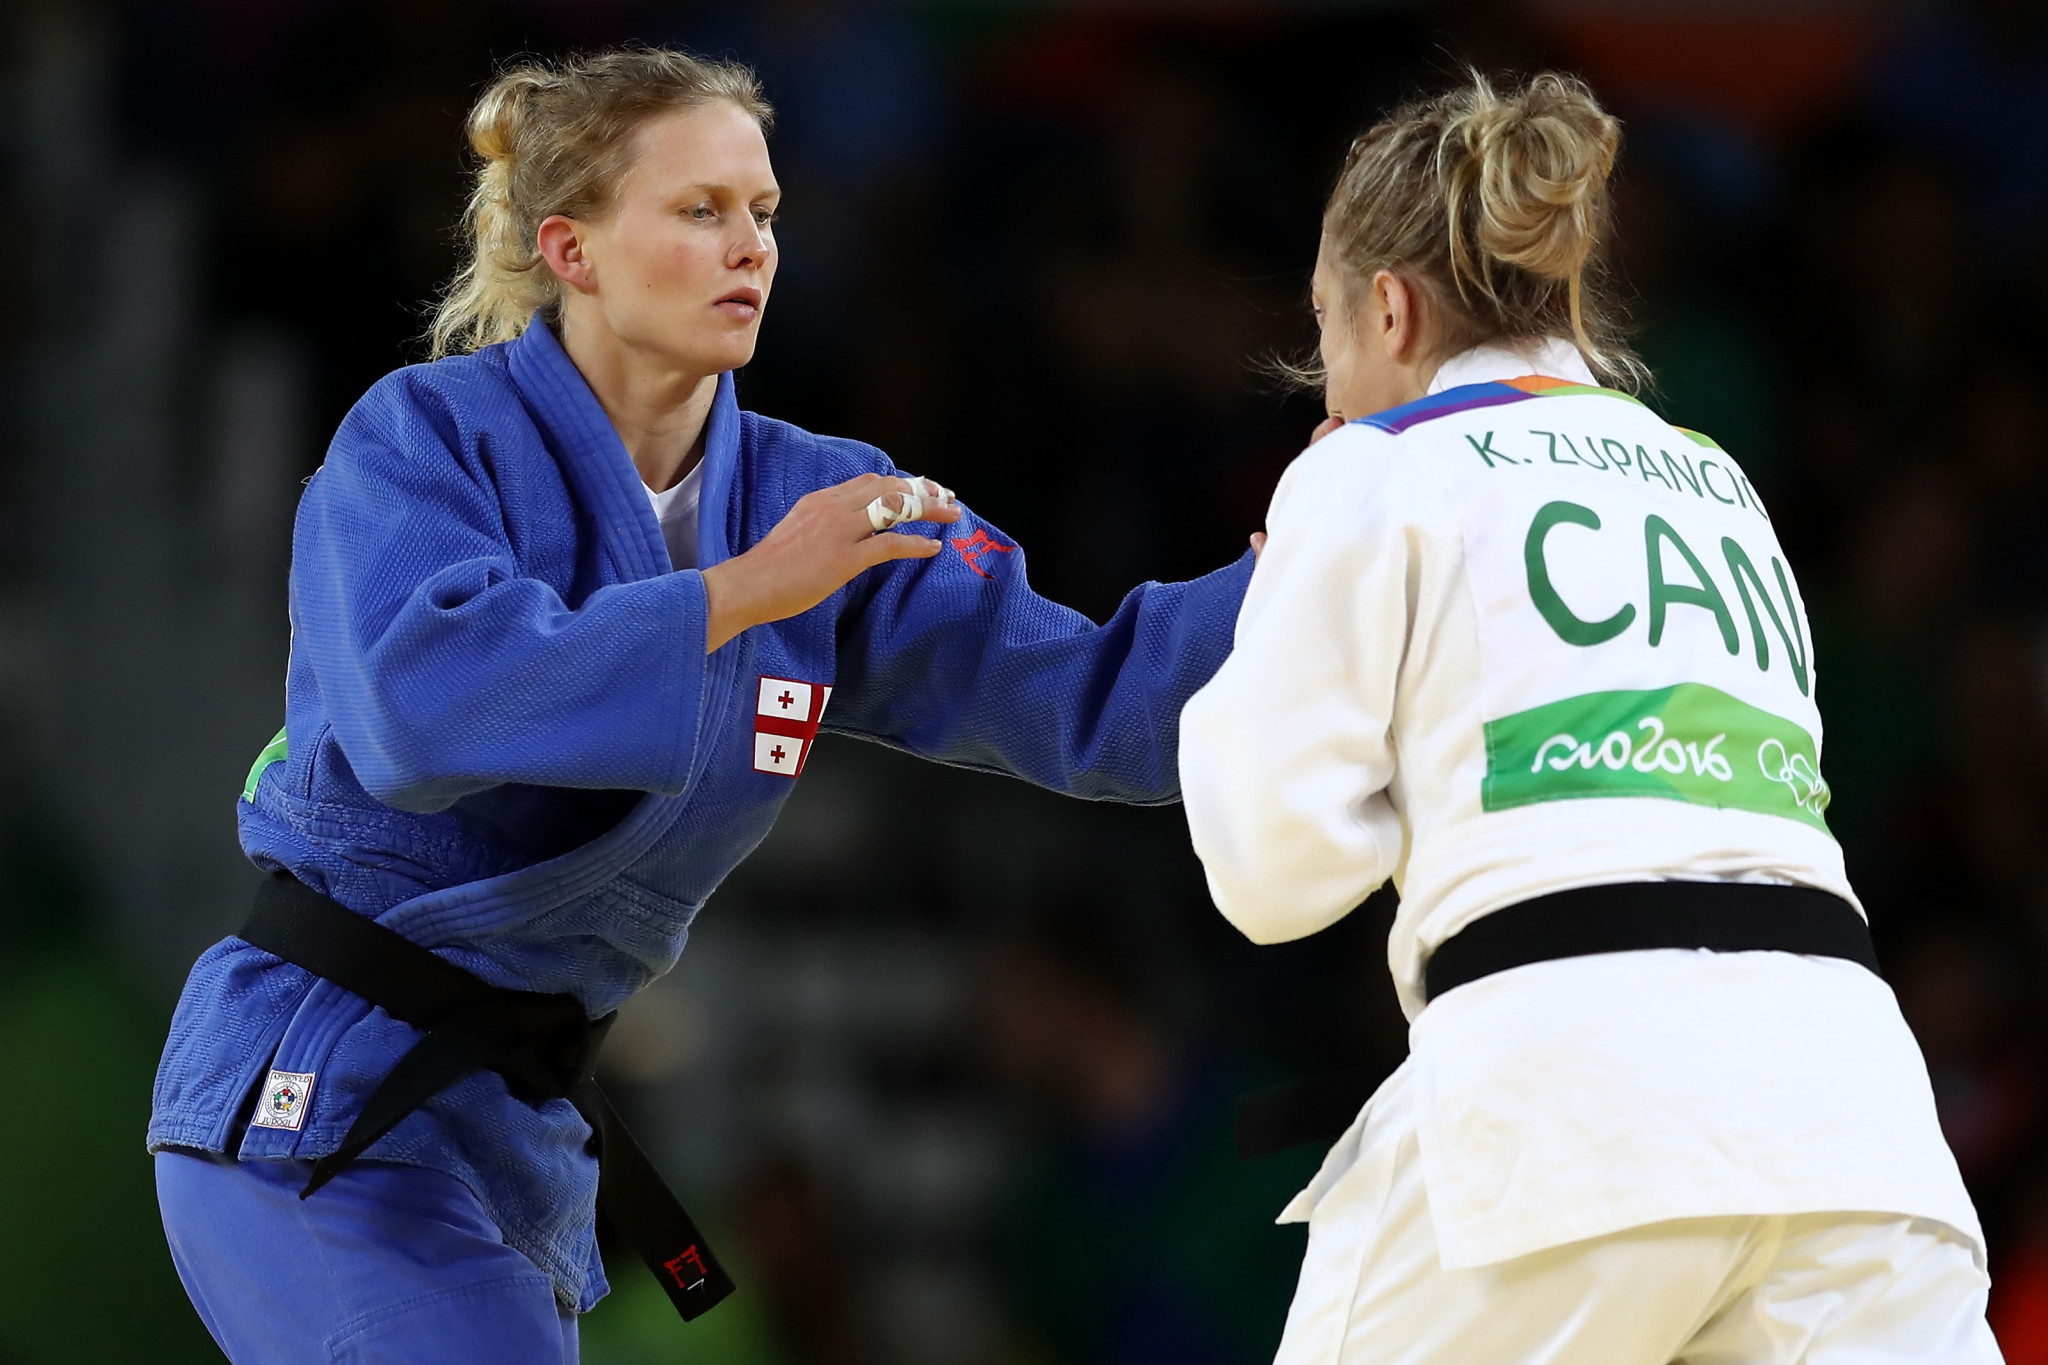 Olympian Stam to commentate on IBSA World Judo Championships